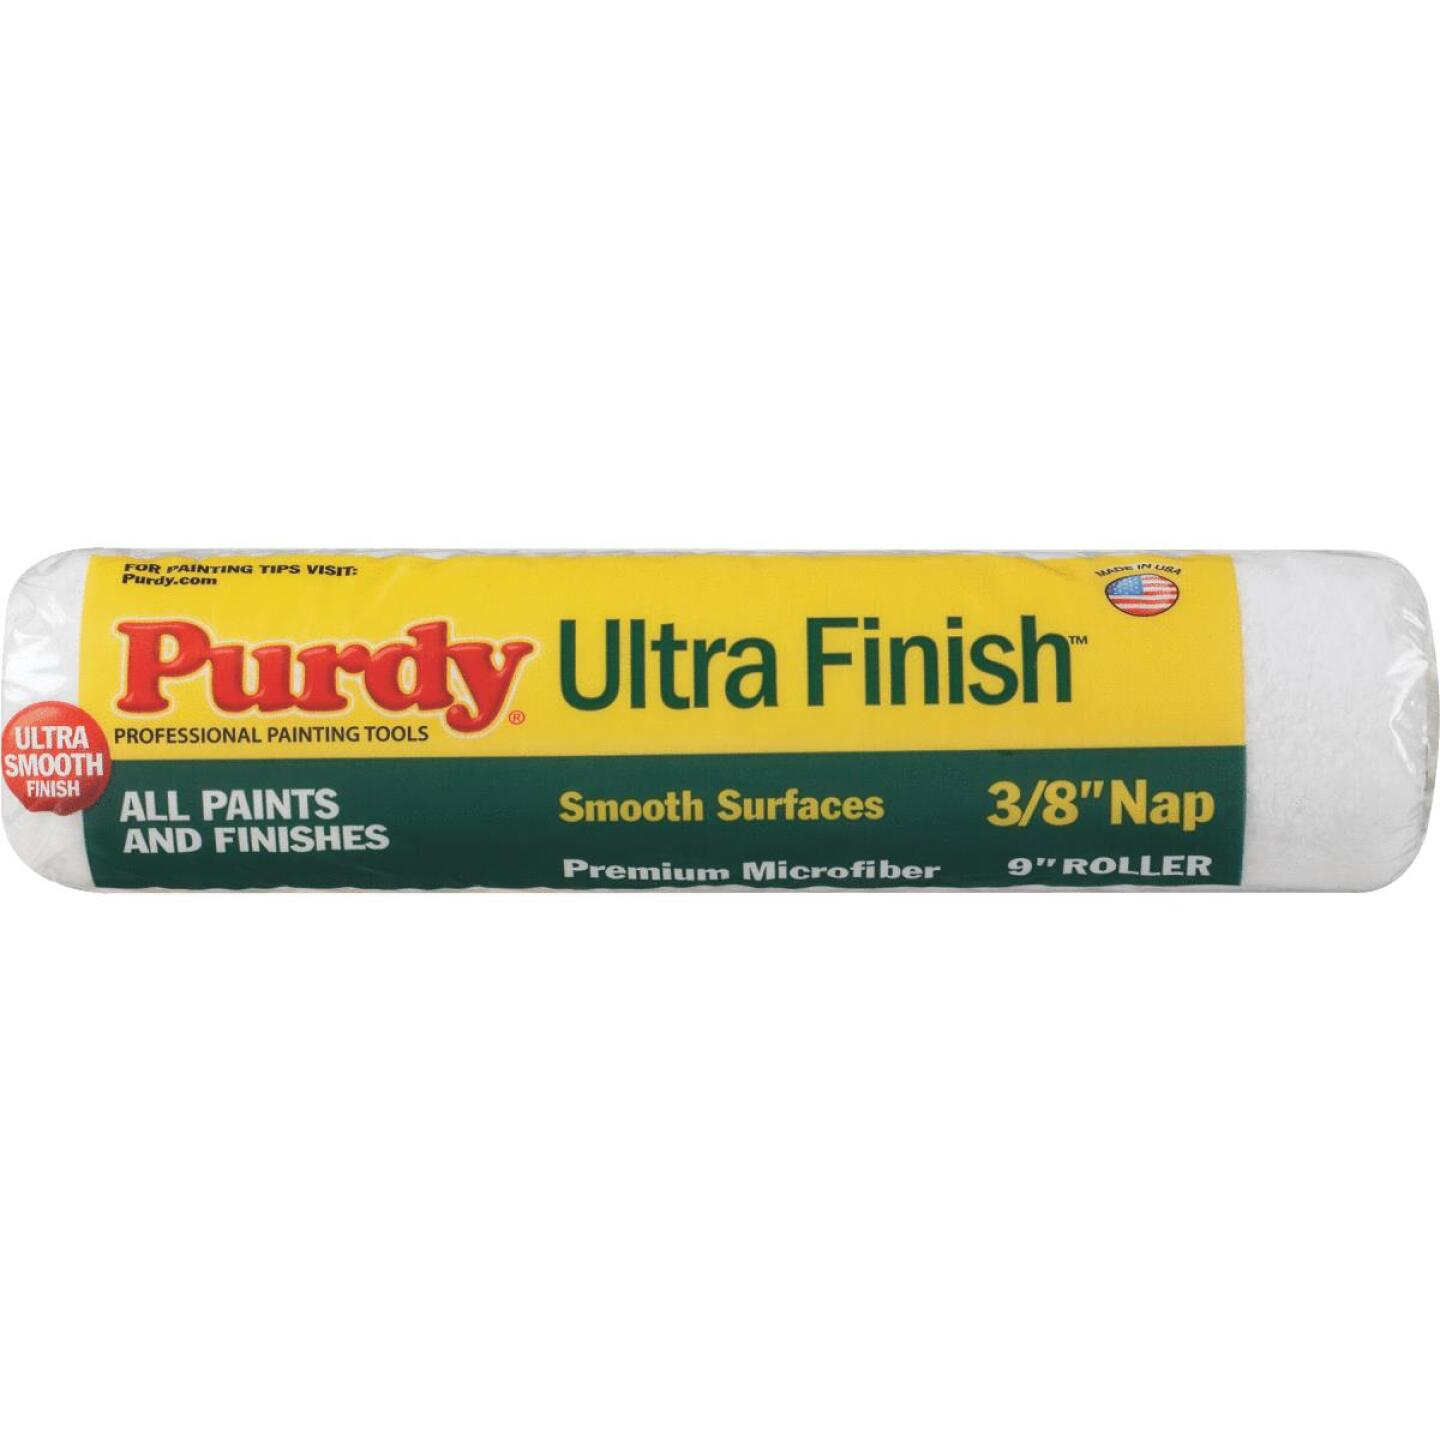 Purdy Ultra Finish 9 In. x 3/8 In. Microfiber Roller Cover Image 1